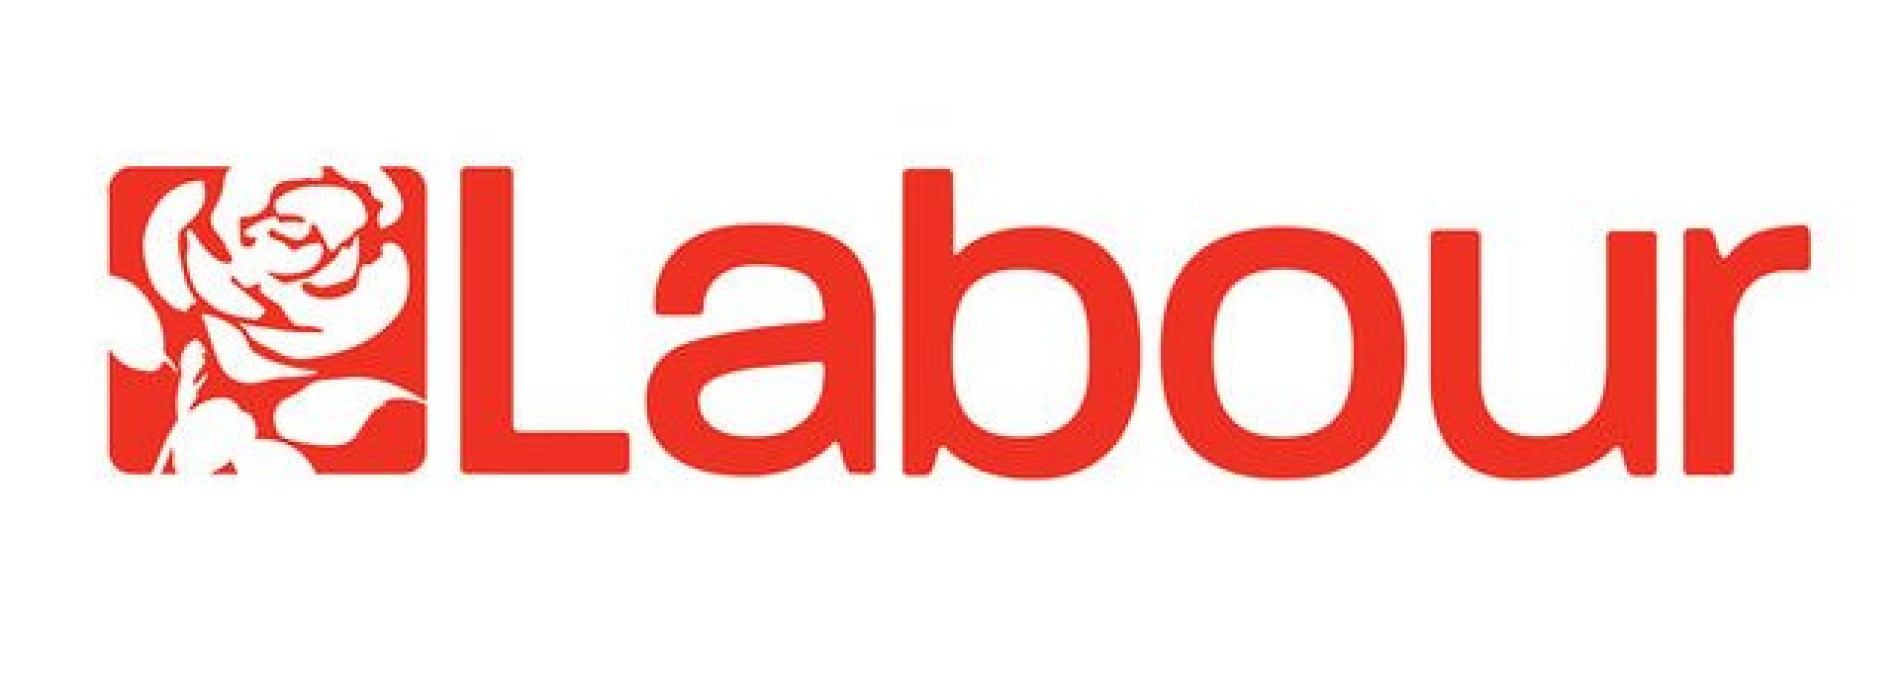 The labour